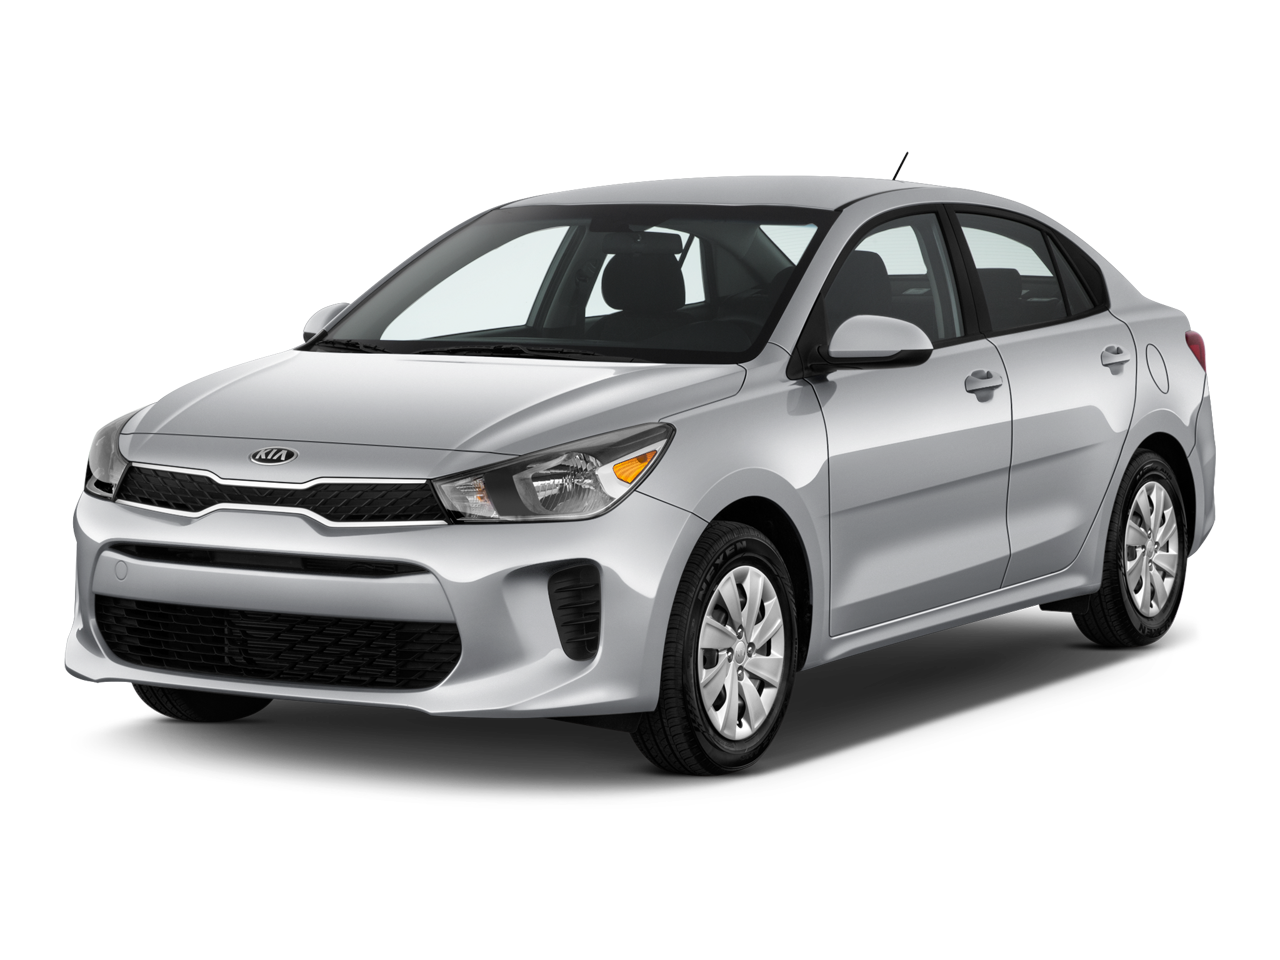 new 2018 kia rio s clinton twp mi near clawson mi summit place kia east. Black Bedroom Furniture Sets. Home Design Ideas